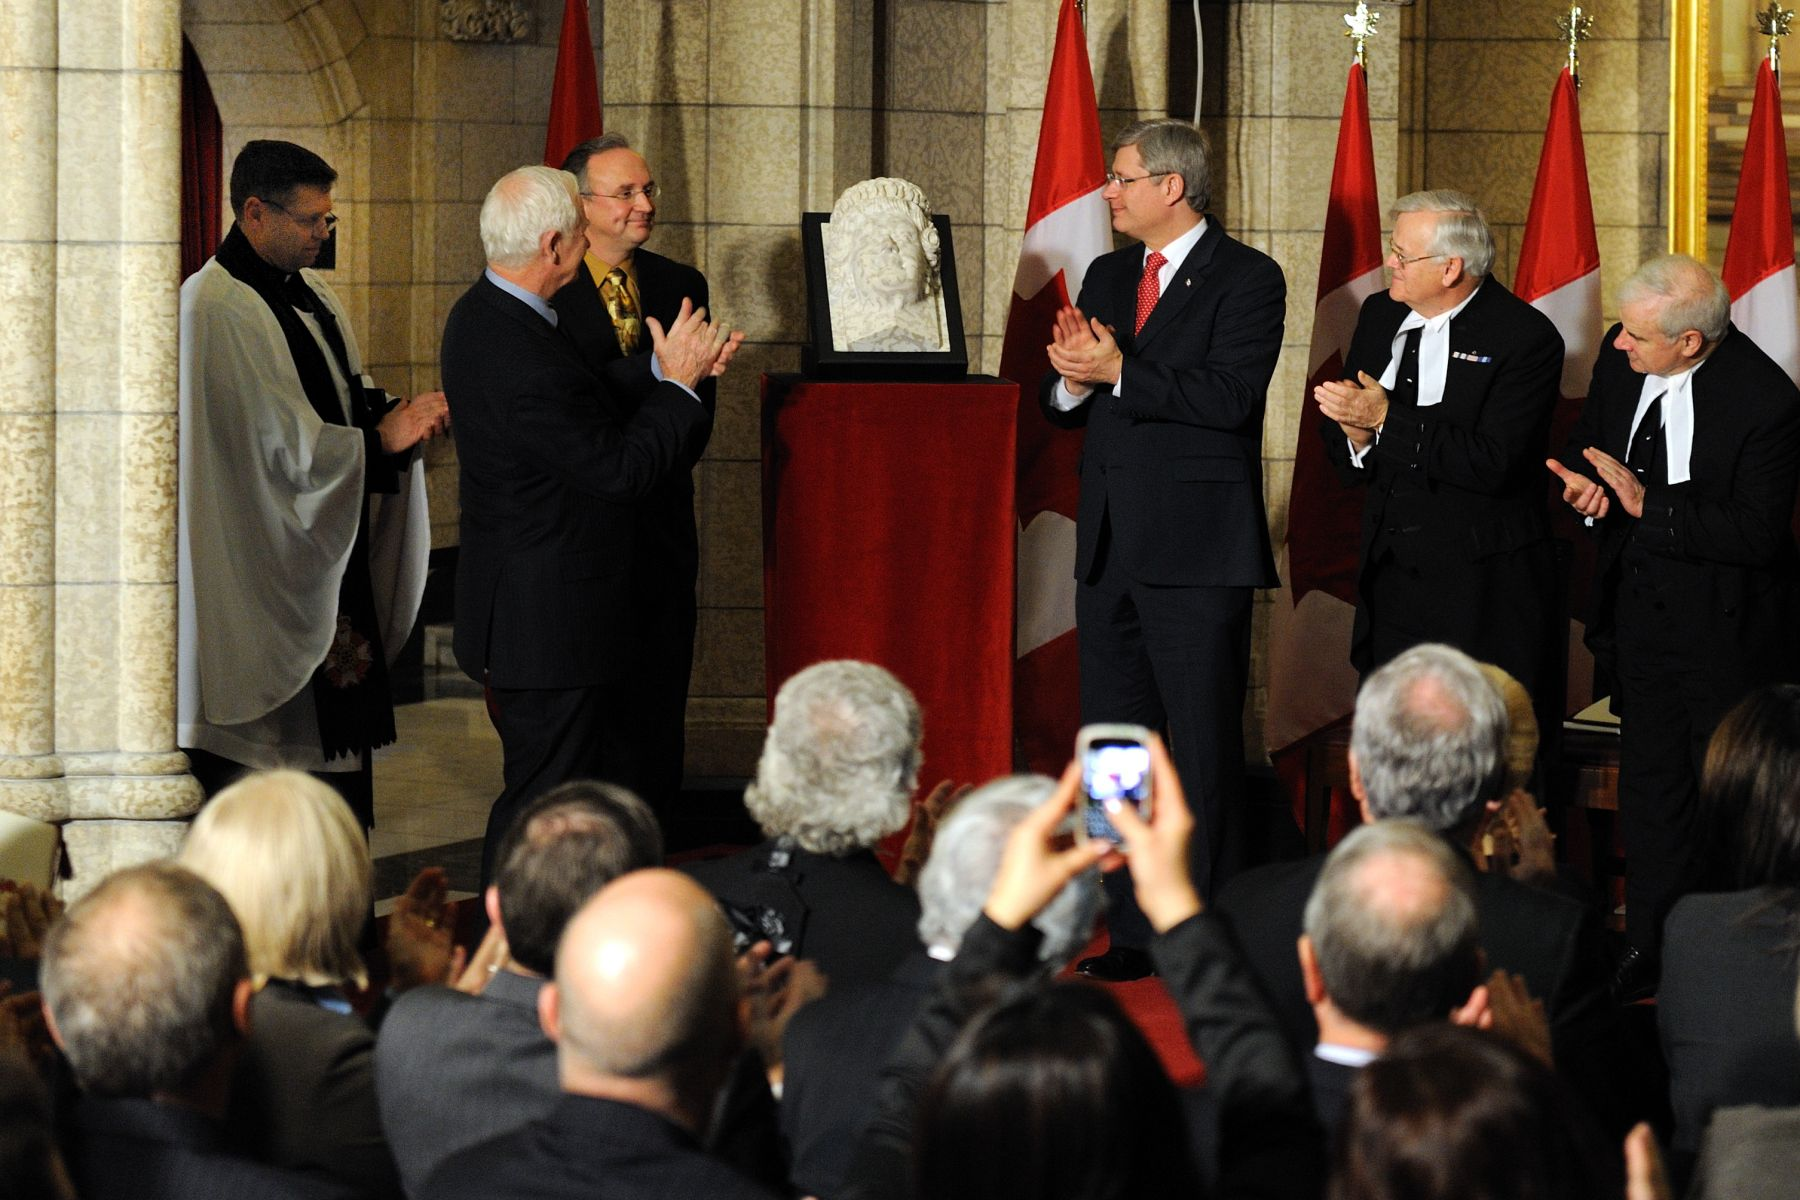 His Excellency the Right Honourable David Johnston, Governor General of Canada, and the Right Honourable Stephen Harper, Prime Minister of Canada, unveiled the sculptured corbel of Her Majesty Queen Elizabeth II during a ceremony in the Senate Foyer, on December 9, 2010. The corbel was created by Dominion Sculptor Phil White and commissioned for the Diamond Jubilee of Her Majesty as Queen of Canada, which will be celebrated on February 6, 2012.